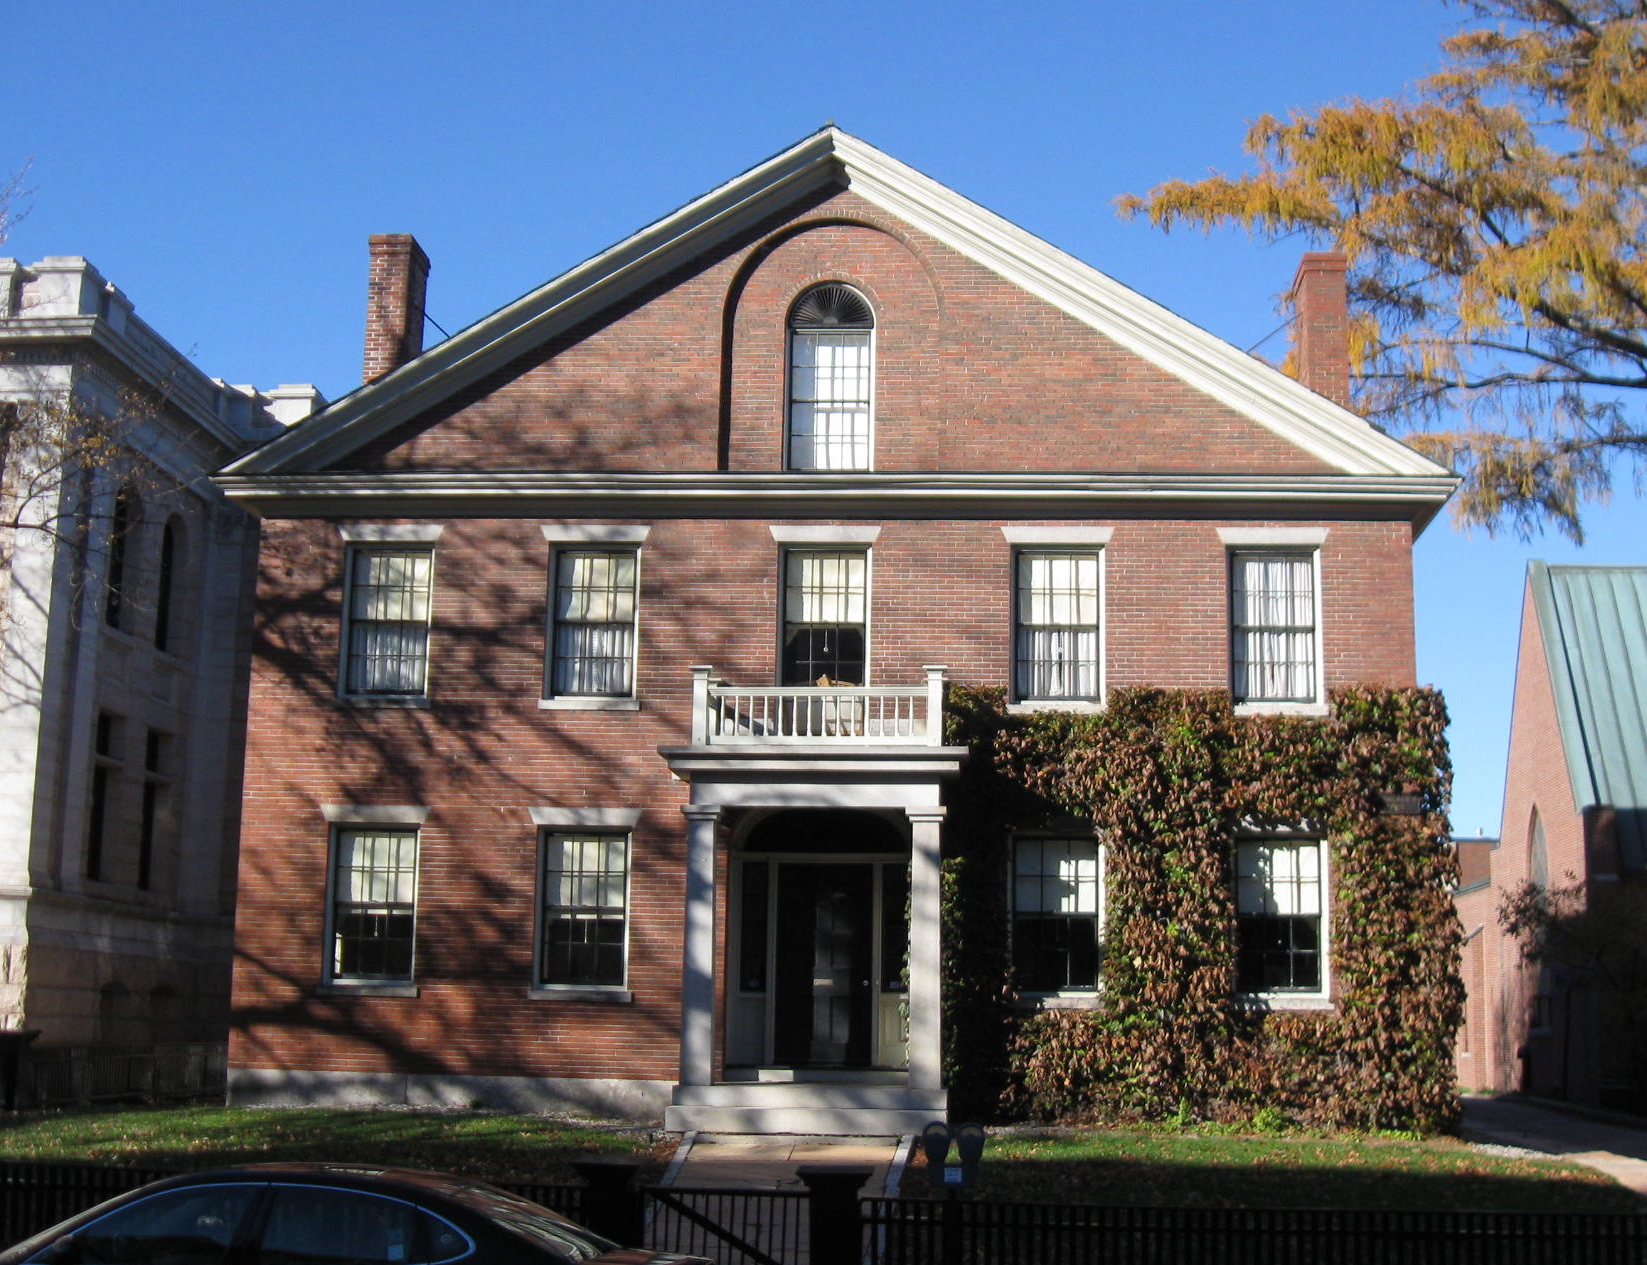 The Upham-Walker House, downtown Concord, New Hampshire